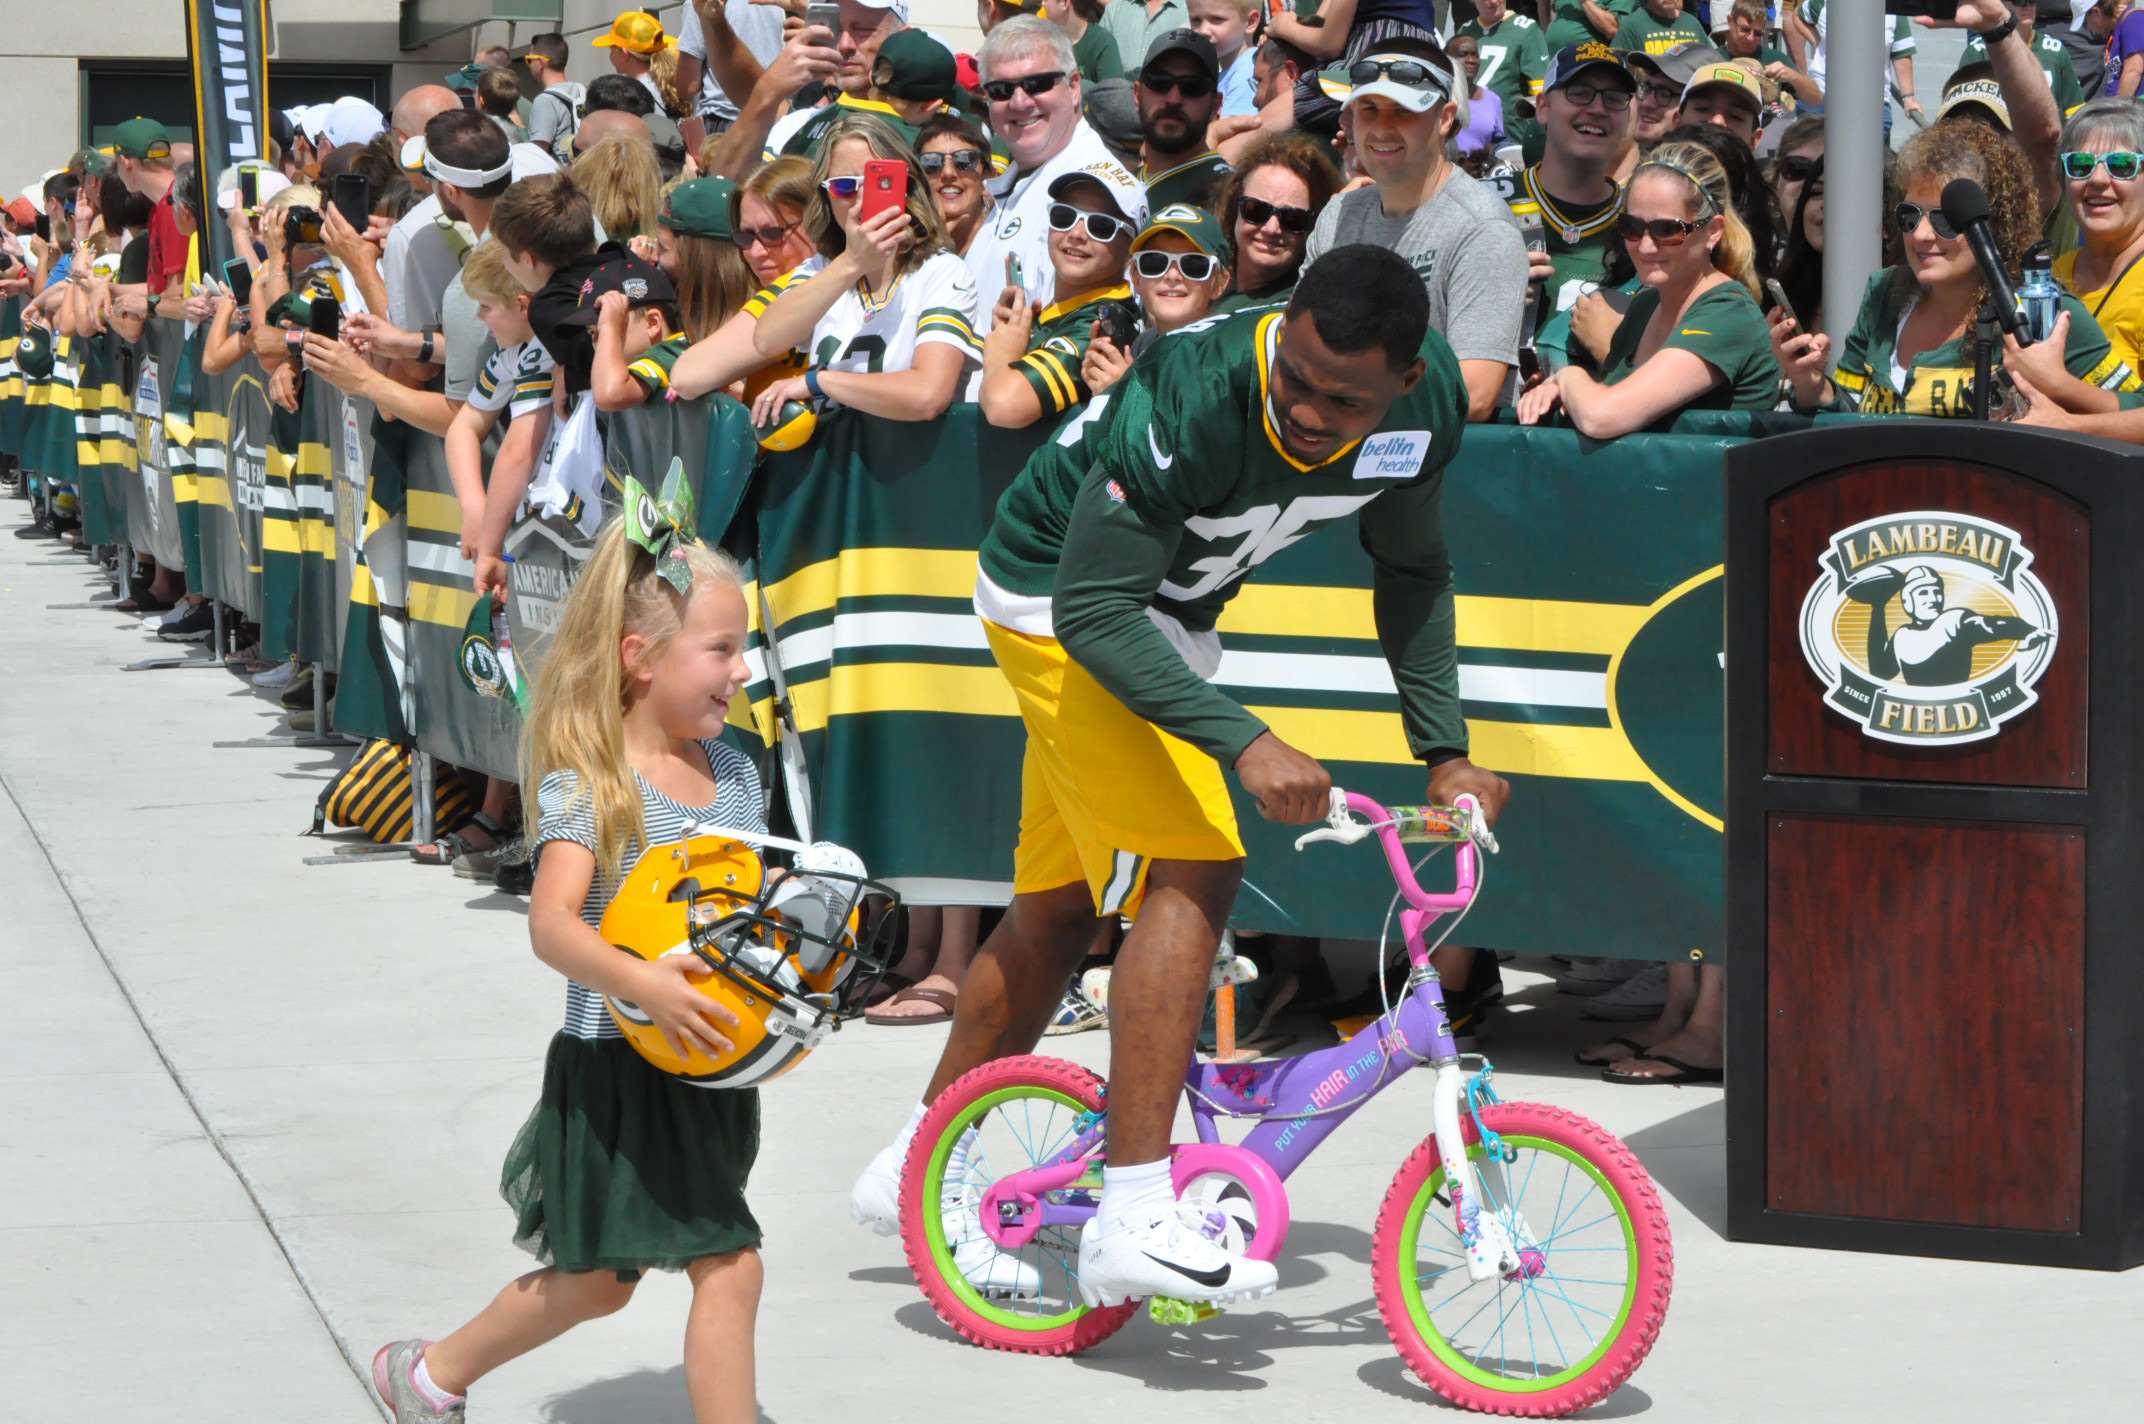 Green Bay Packers' Jermaine Whitehead (35) rides a child's bicycle to training camp practice July 26, 2018. (WLUK/Sierra Trojan)